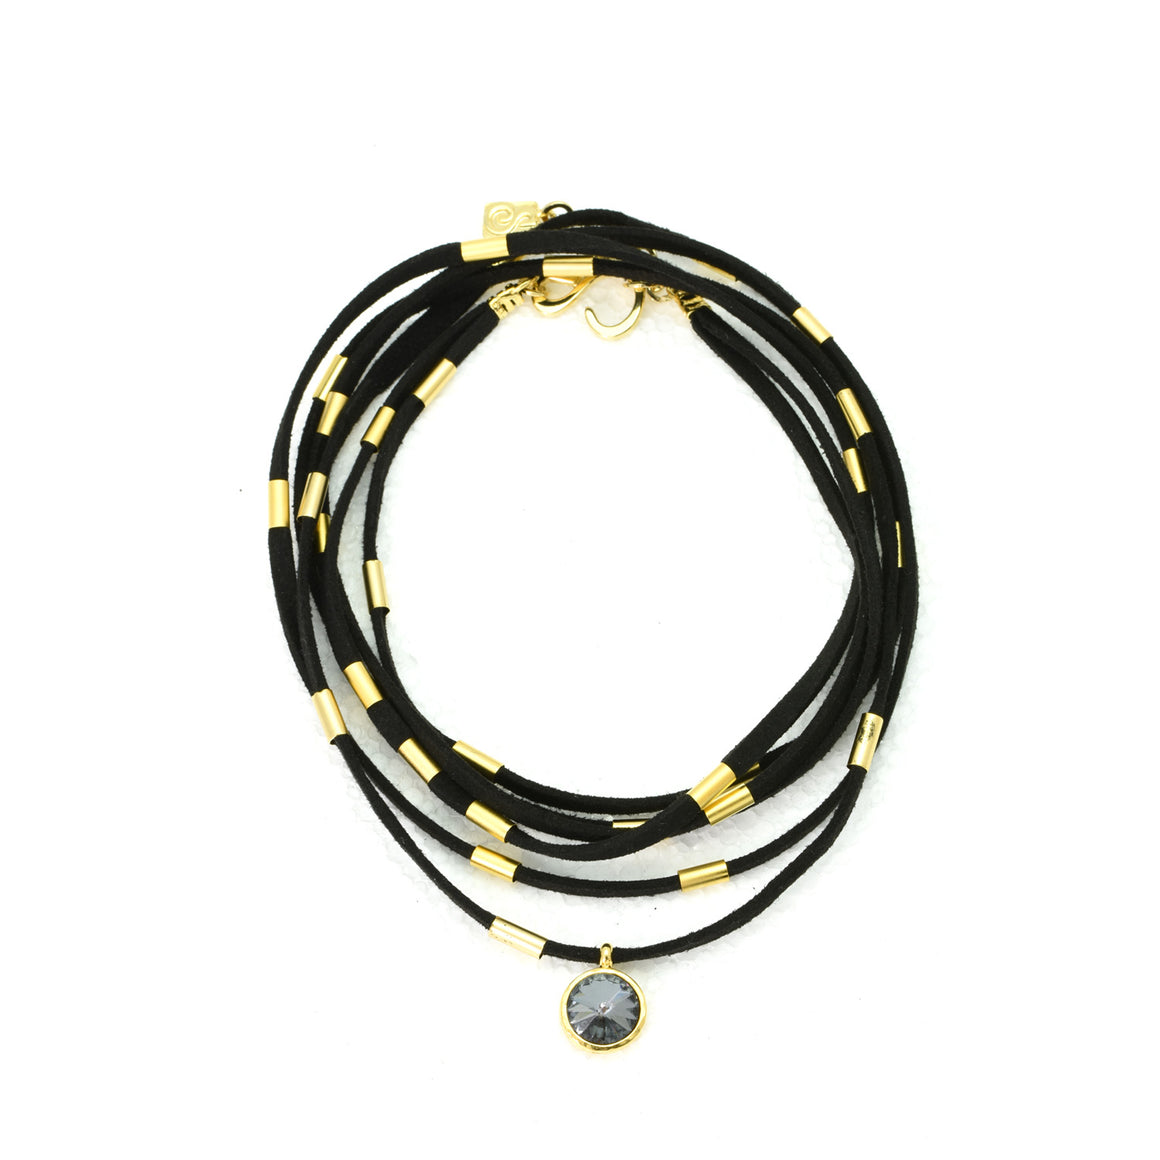 Black Suede Necklace turns into a Bracelet - SEA Smadar Eliasaf